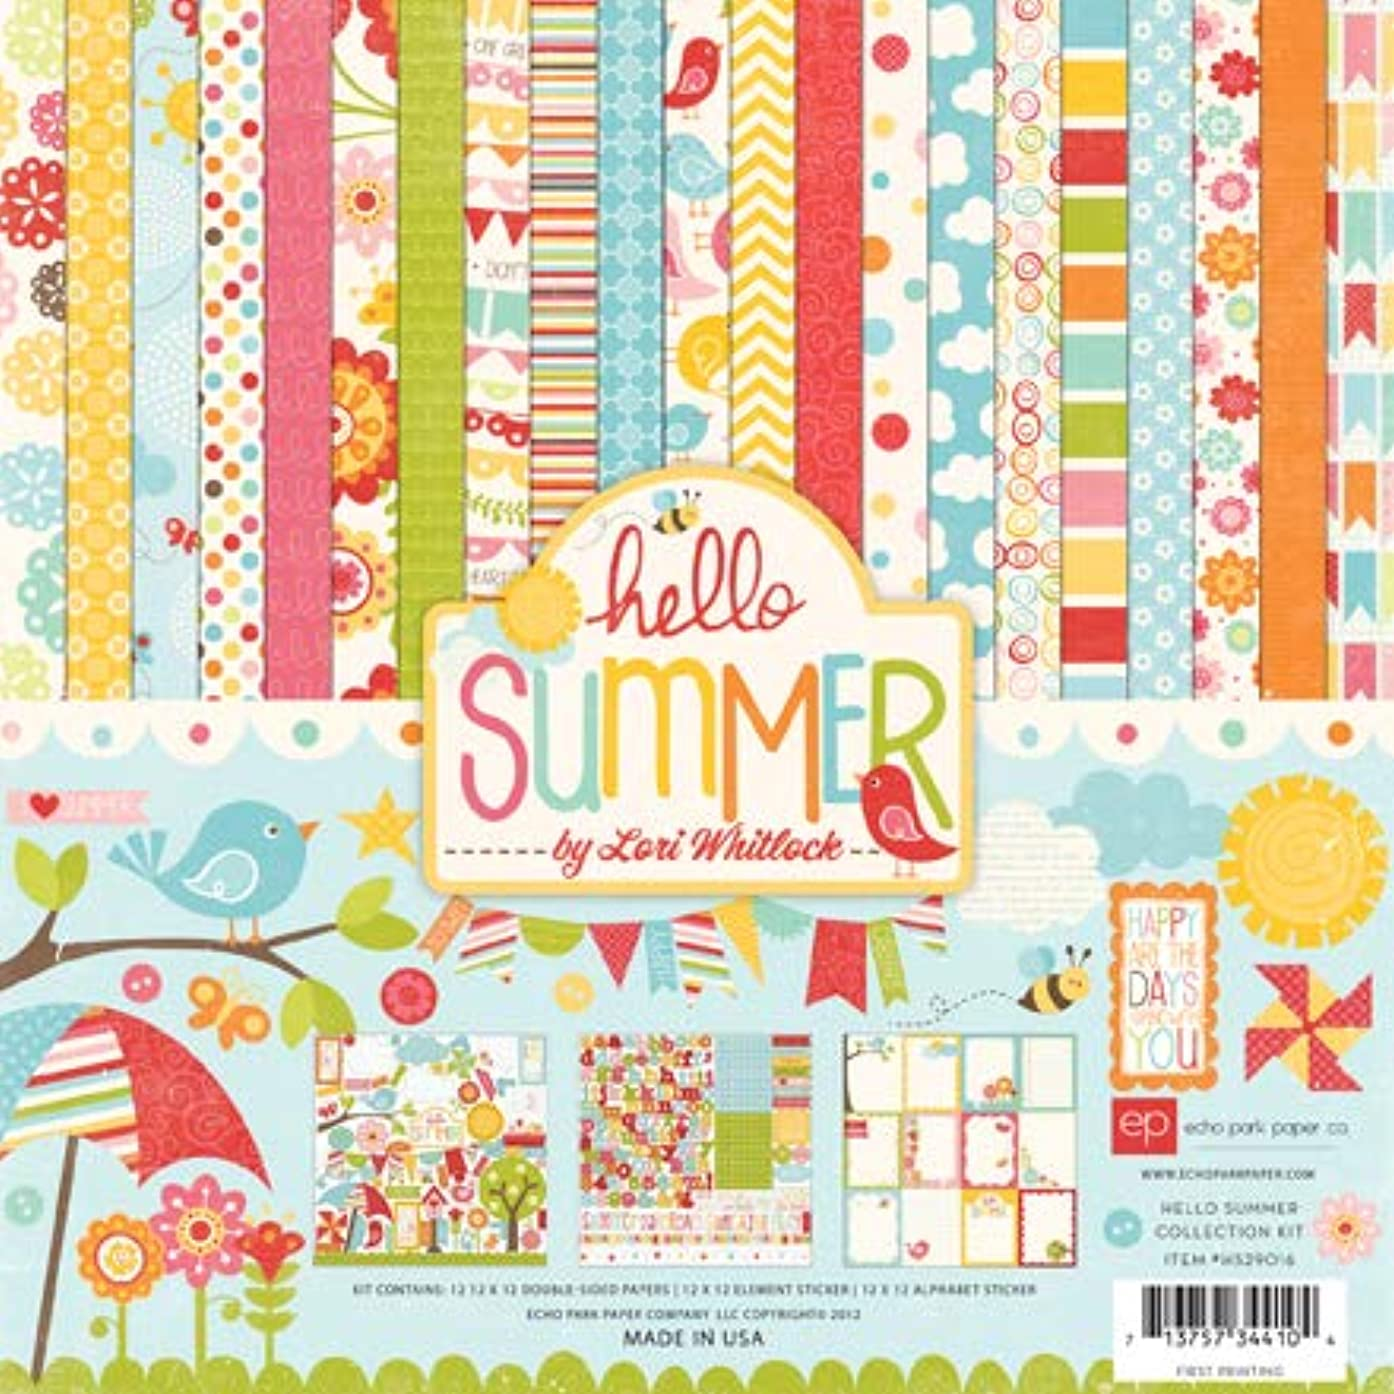 Echo Park Paper Company HS29016TM Hello Summer Collection Scrapbooking Kit by Lori Whitlock Features Flowers, Butterflies, Birds, Clouds, Banners, Bumble Bees, Umbrellas, and More